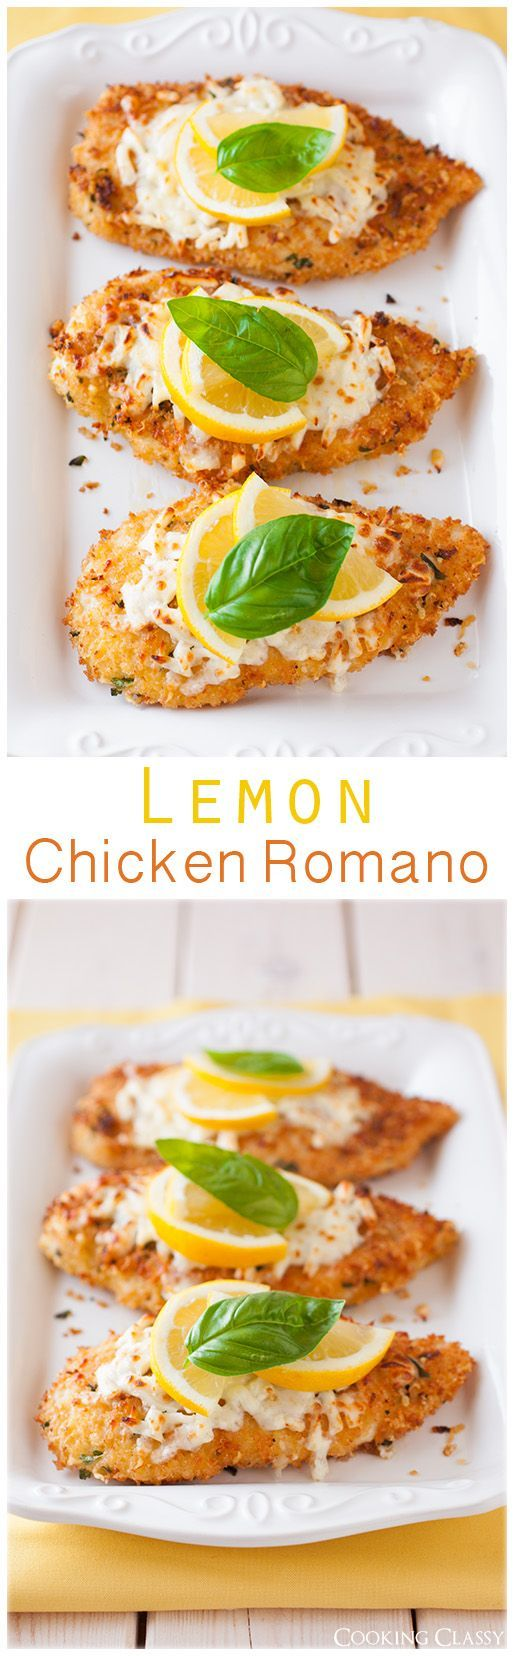 Lemon Chicken Romano – This is one of my favorite ways to make chicken! It's so flavorful and delicious!!